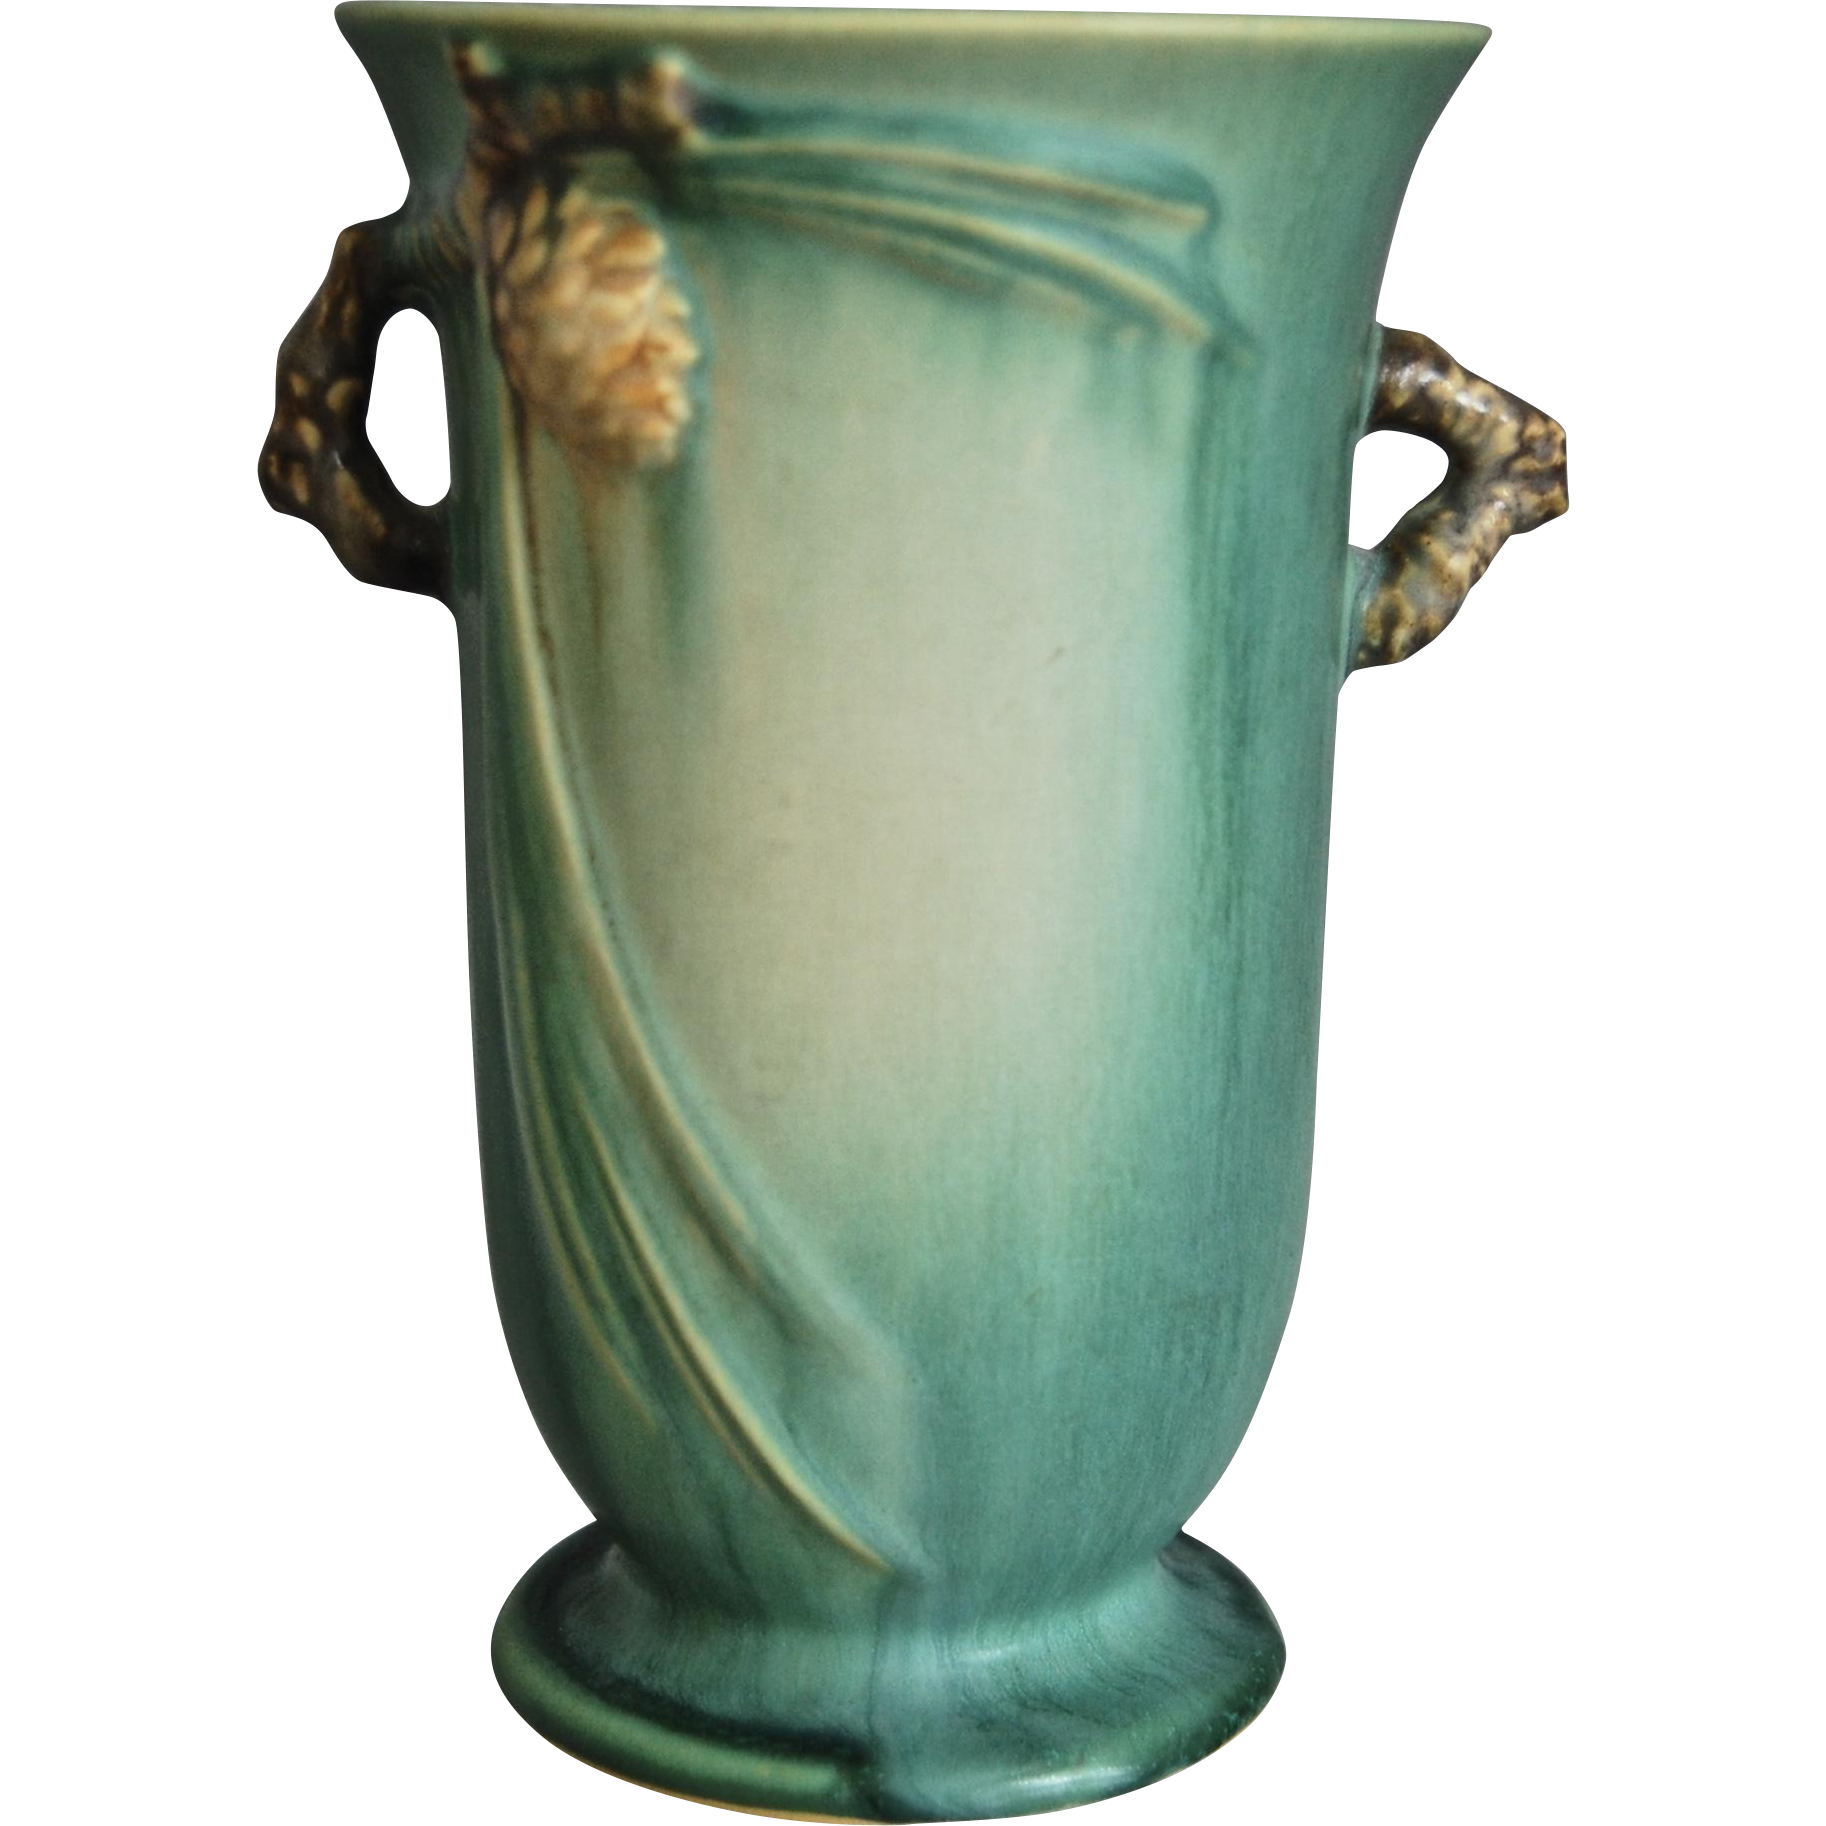 Roseville Pottery Pinecone Vase 838 6 Green C 1936 From Thedevilduckcollection On Ruby Lane